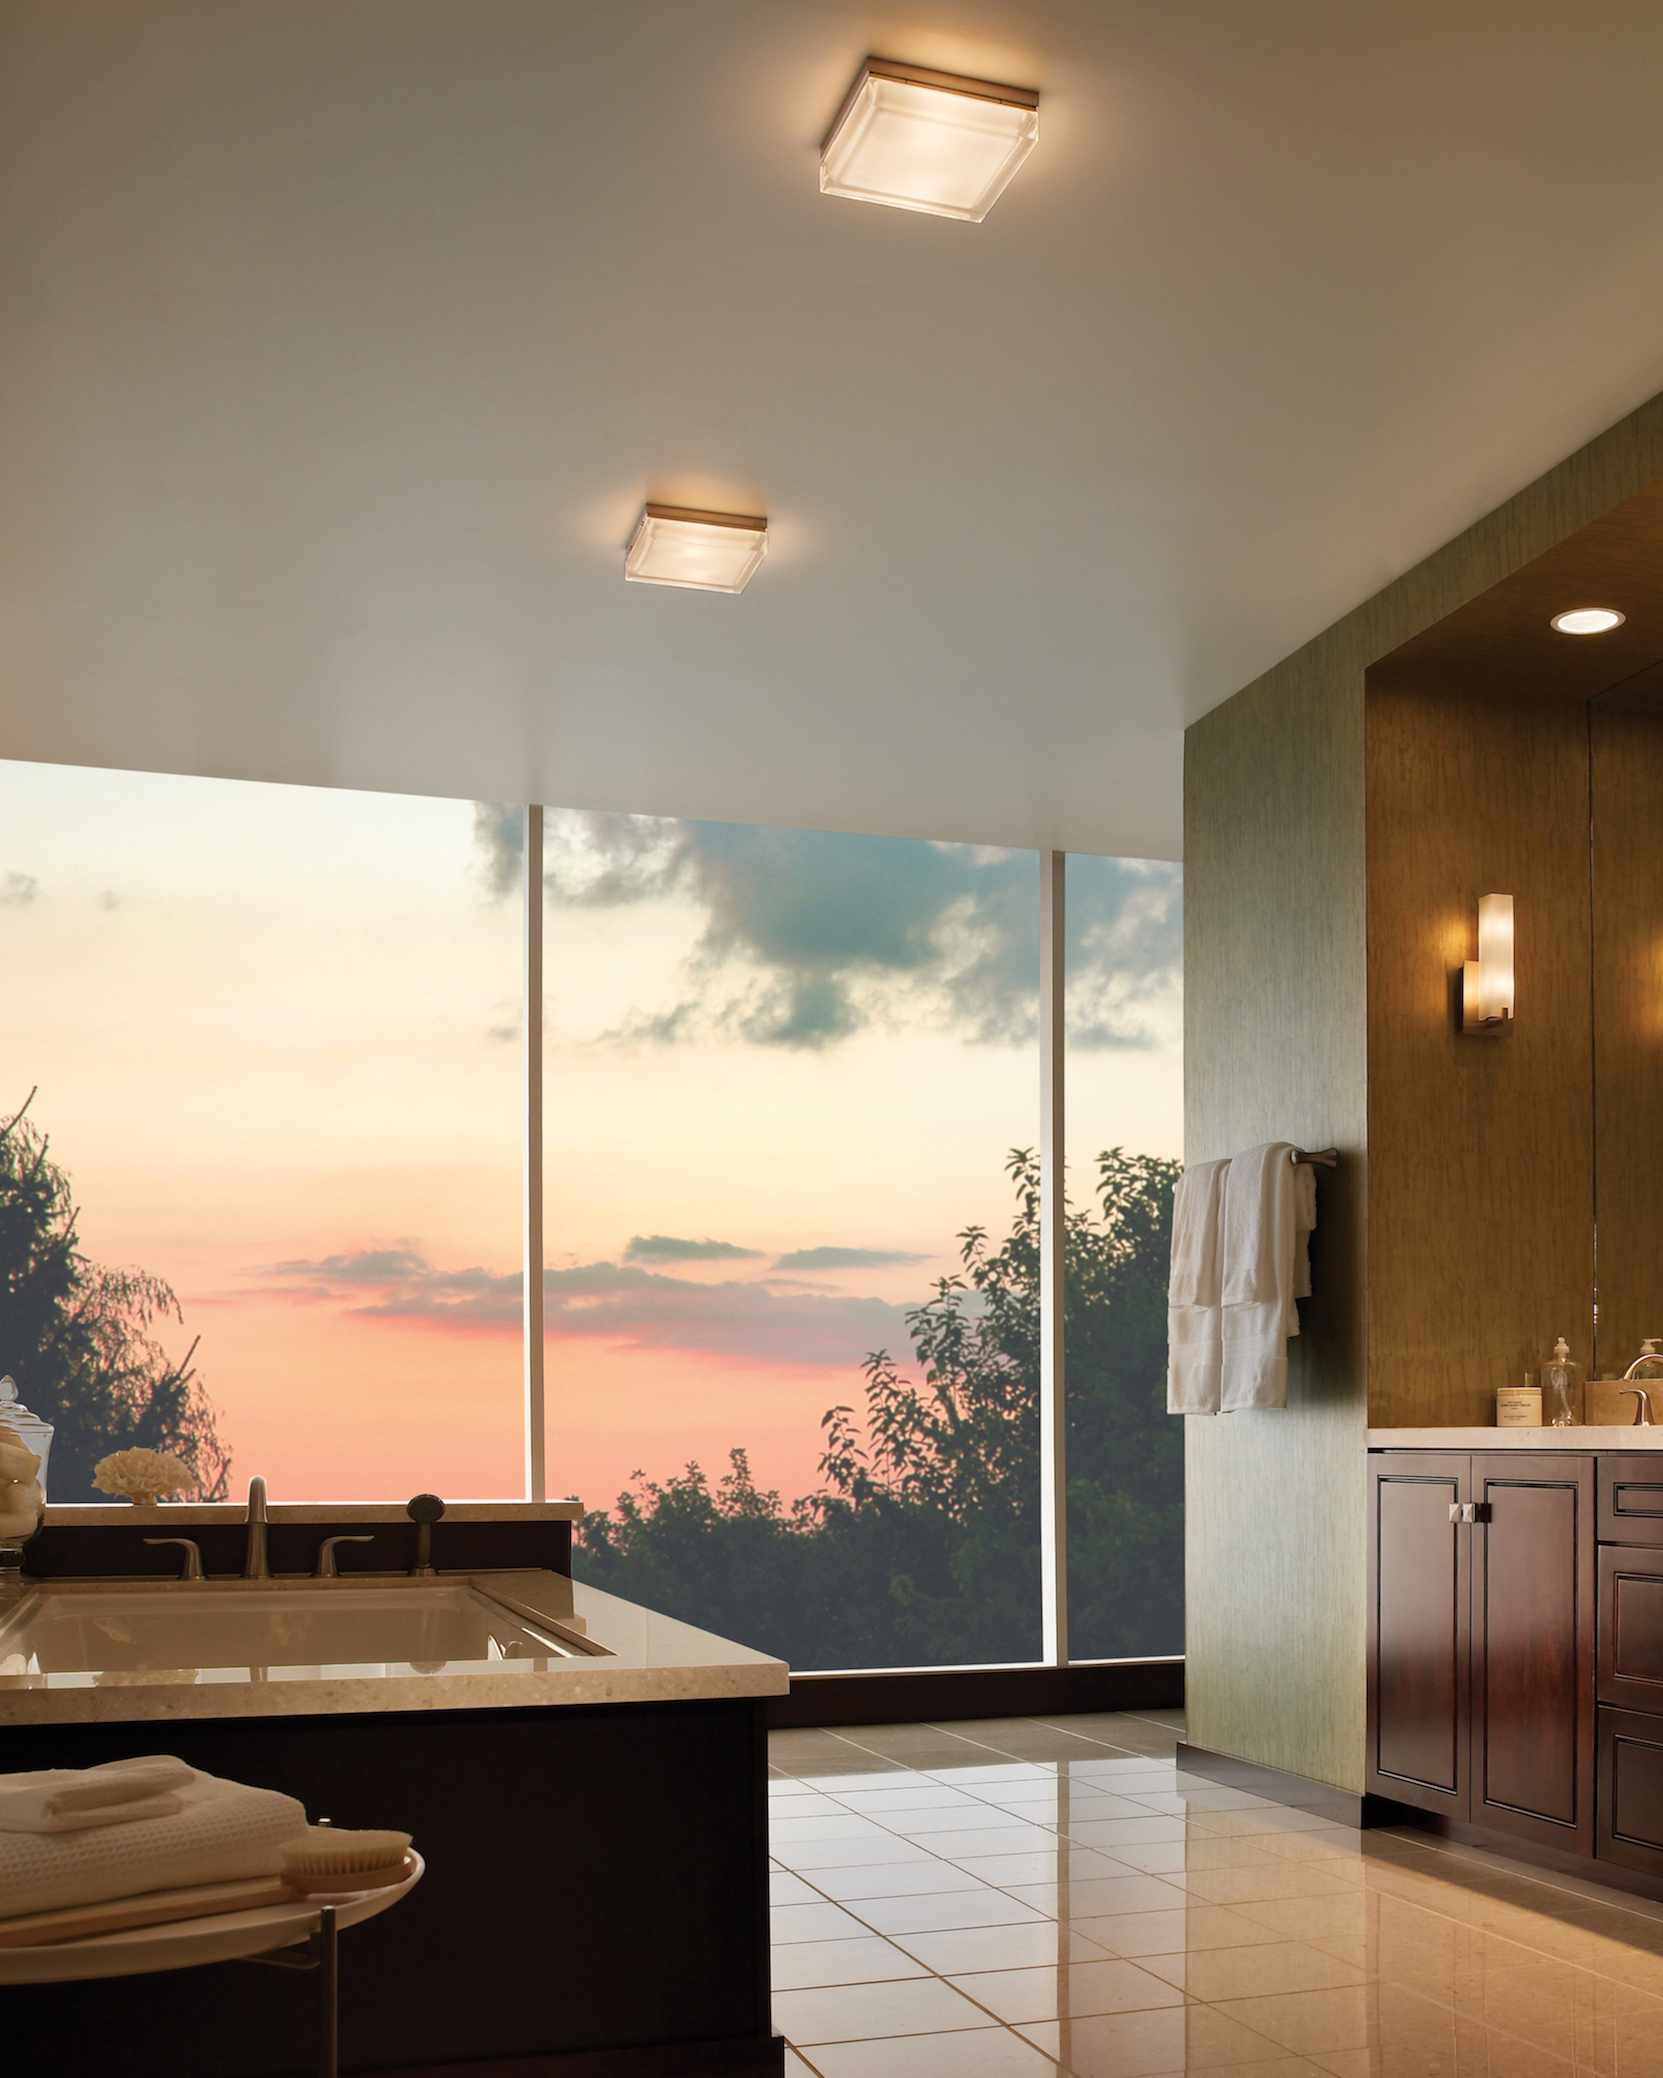 Bathroom Lighting Fixtures Contemporary bathroom lighting buying guide | design necessities lighting